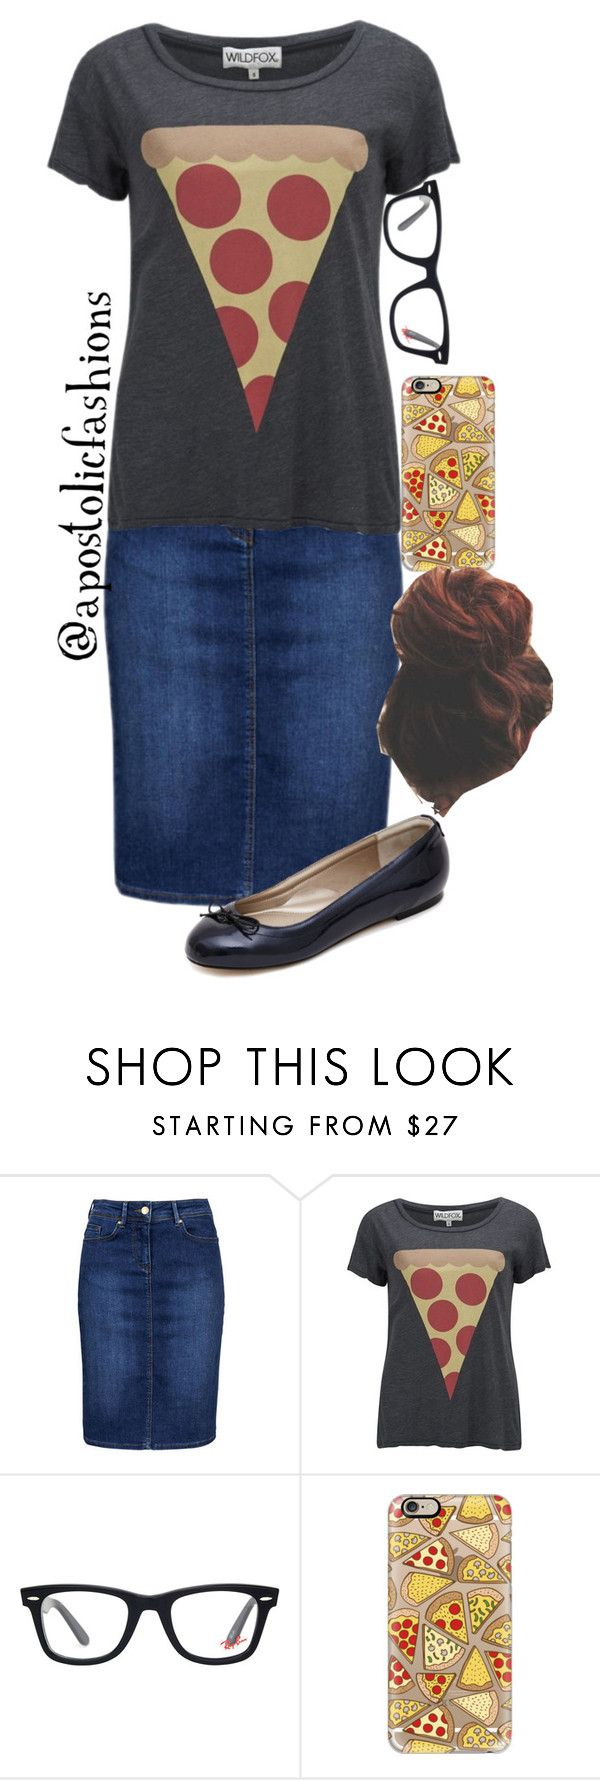 """""""Apostolic Fashions #889"""" by apostolicfashions on Polyvore featuring Wildfox, Ray-Ban and Casetify"""